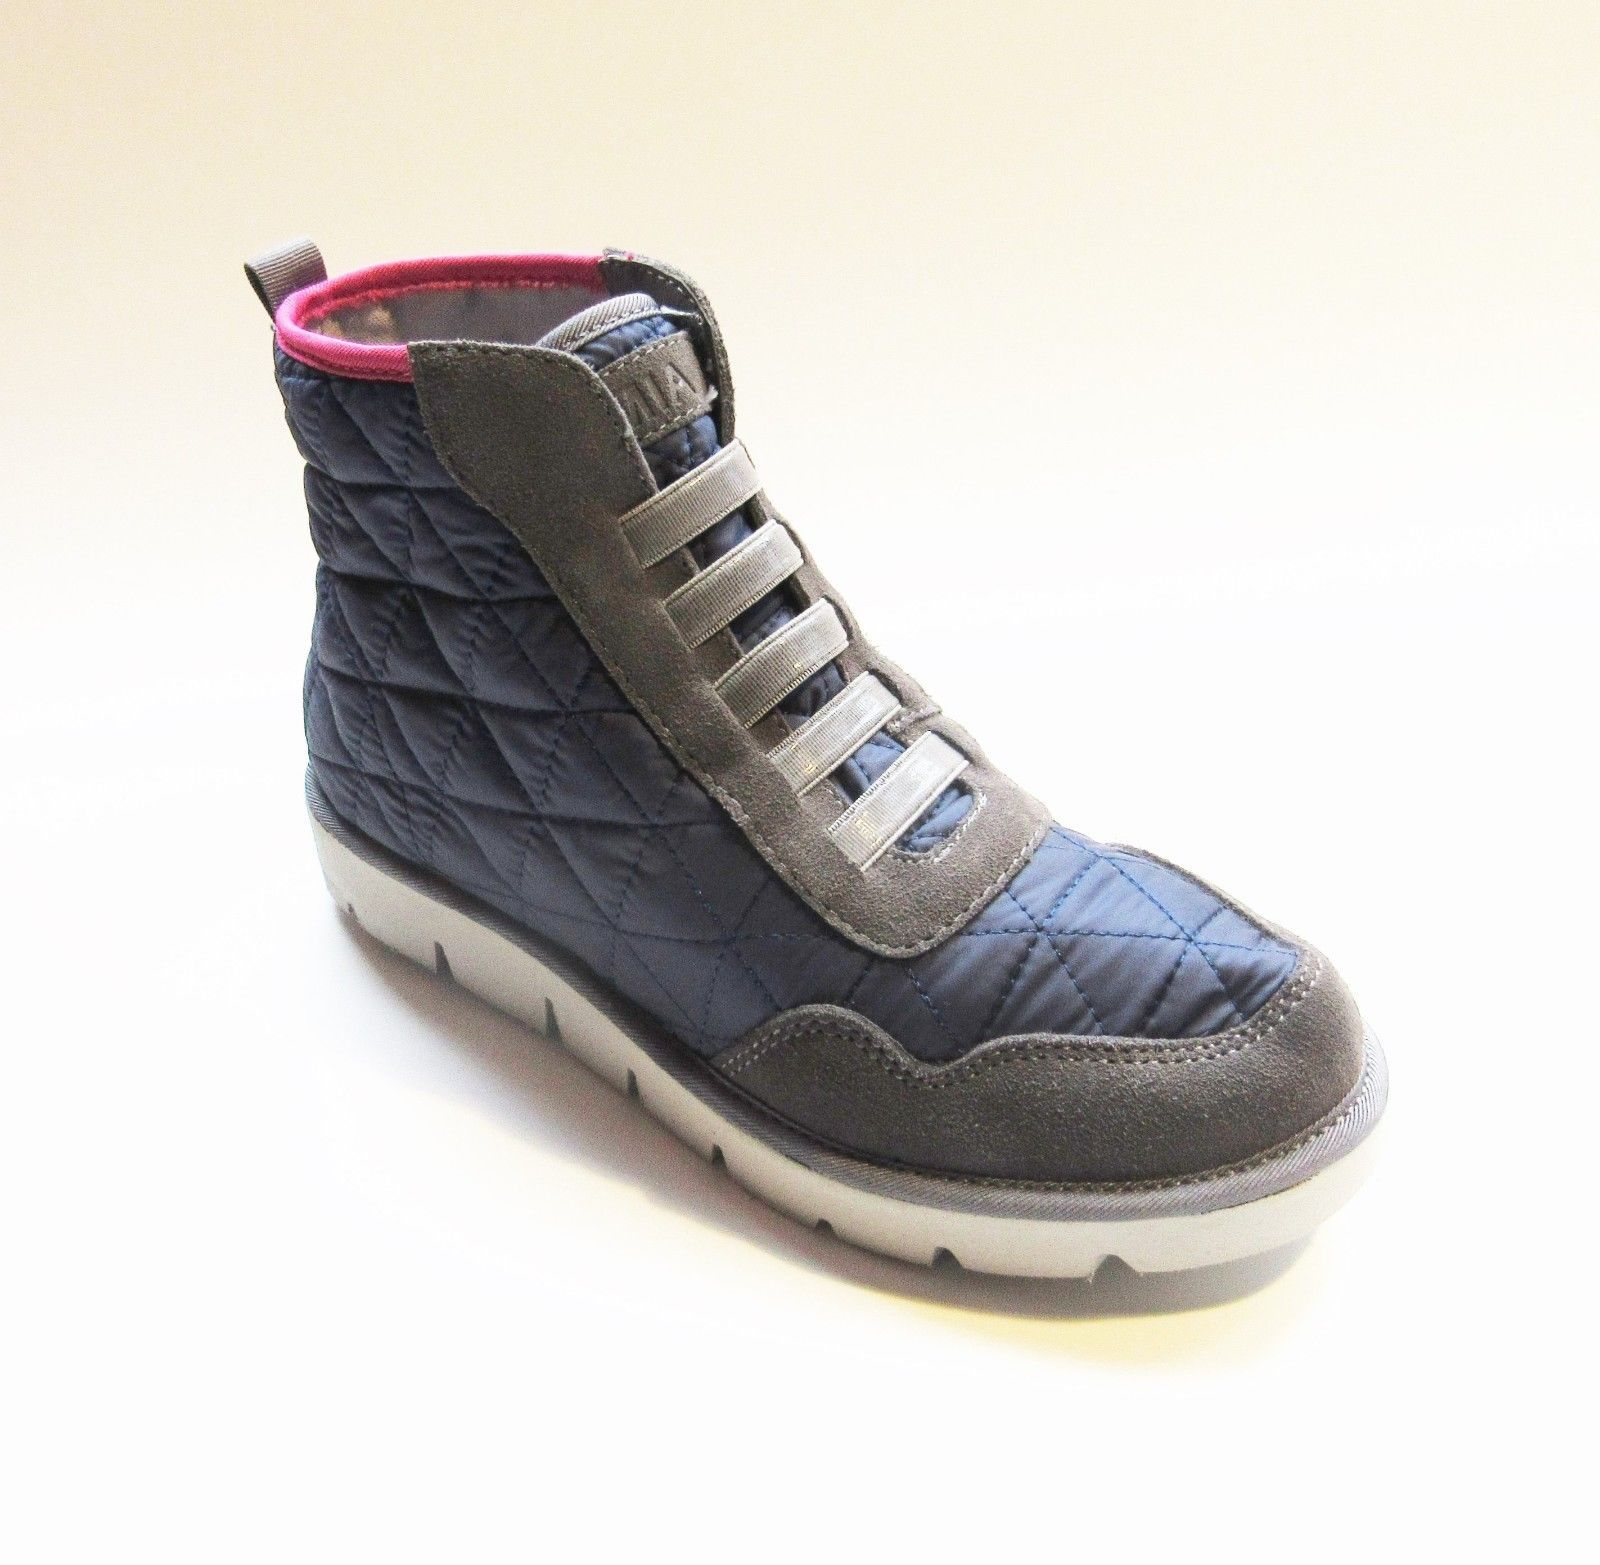 f4b3c2d3da MIA High-top Quilted Blue Gray & Pink Trainers Sneakers Sz 6, 6.5, 7.5 NWOB  - $34.71 - $40.84